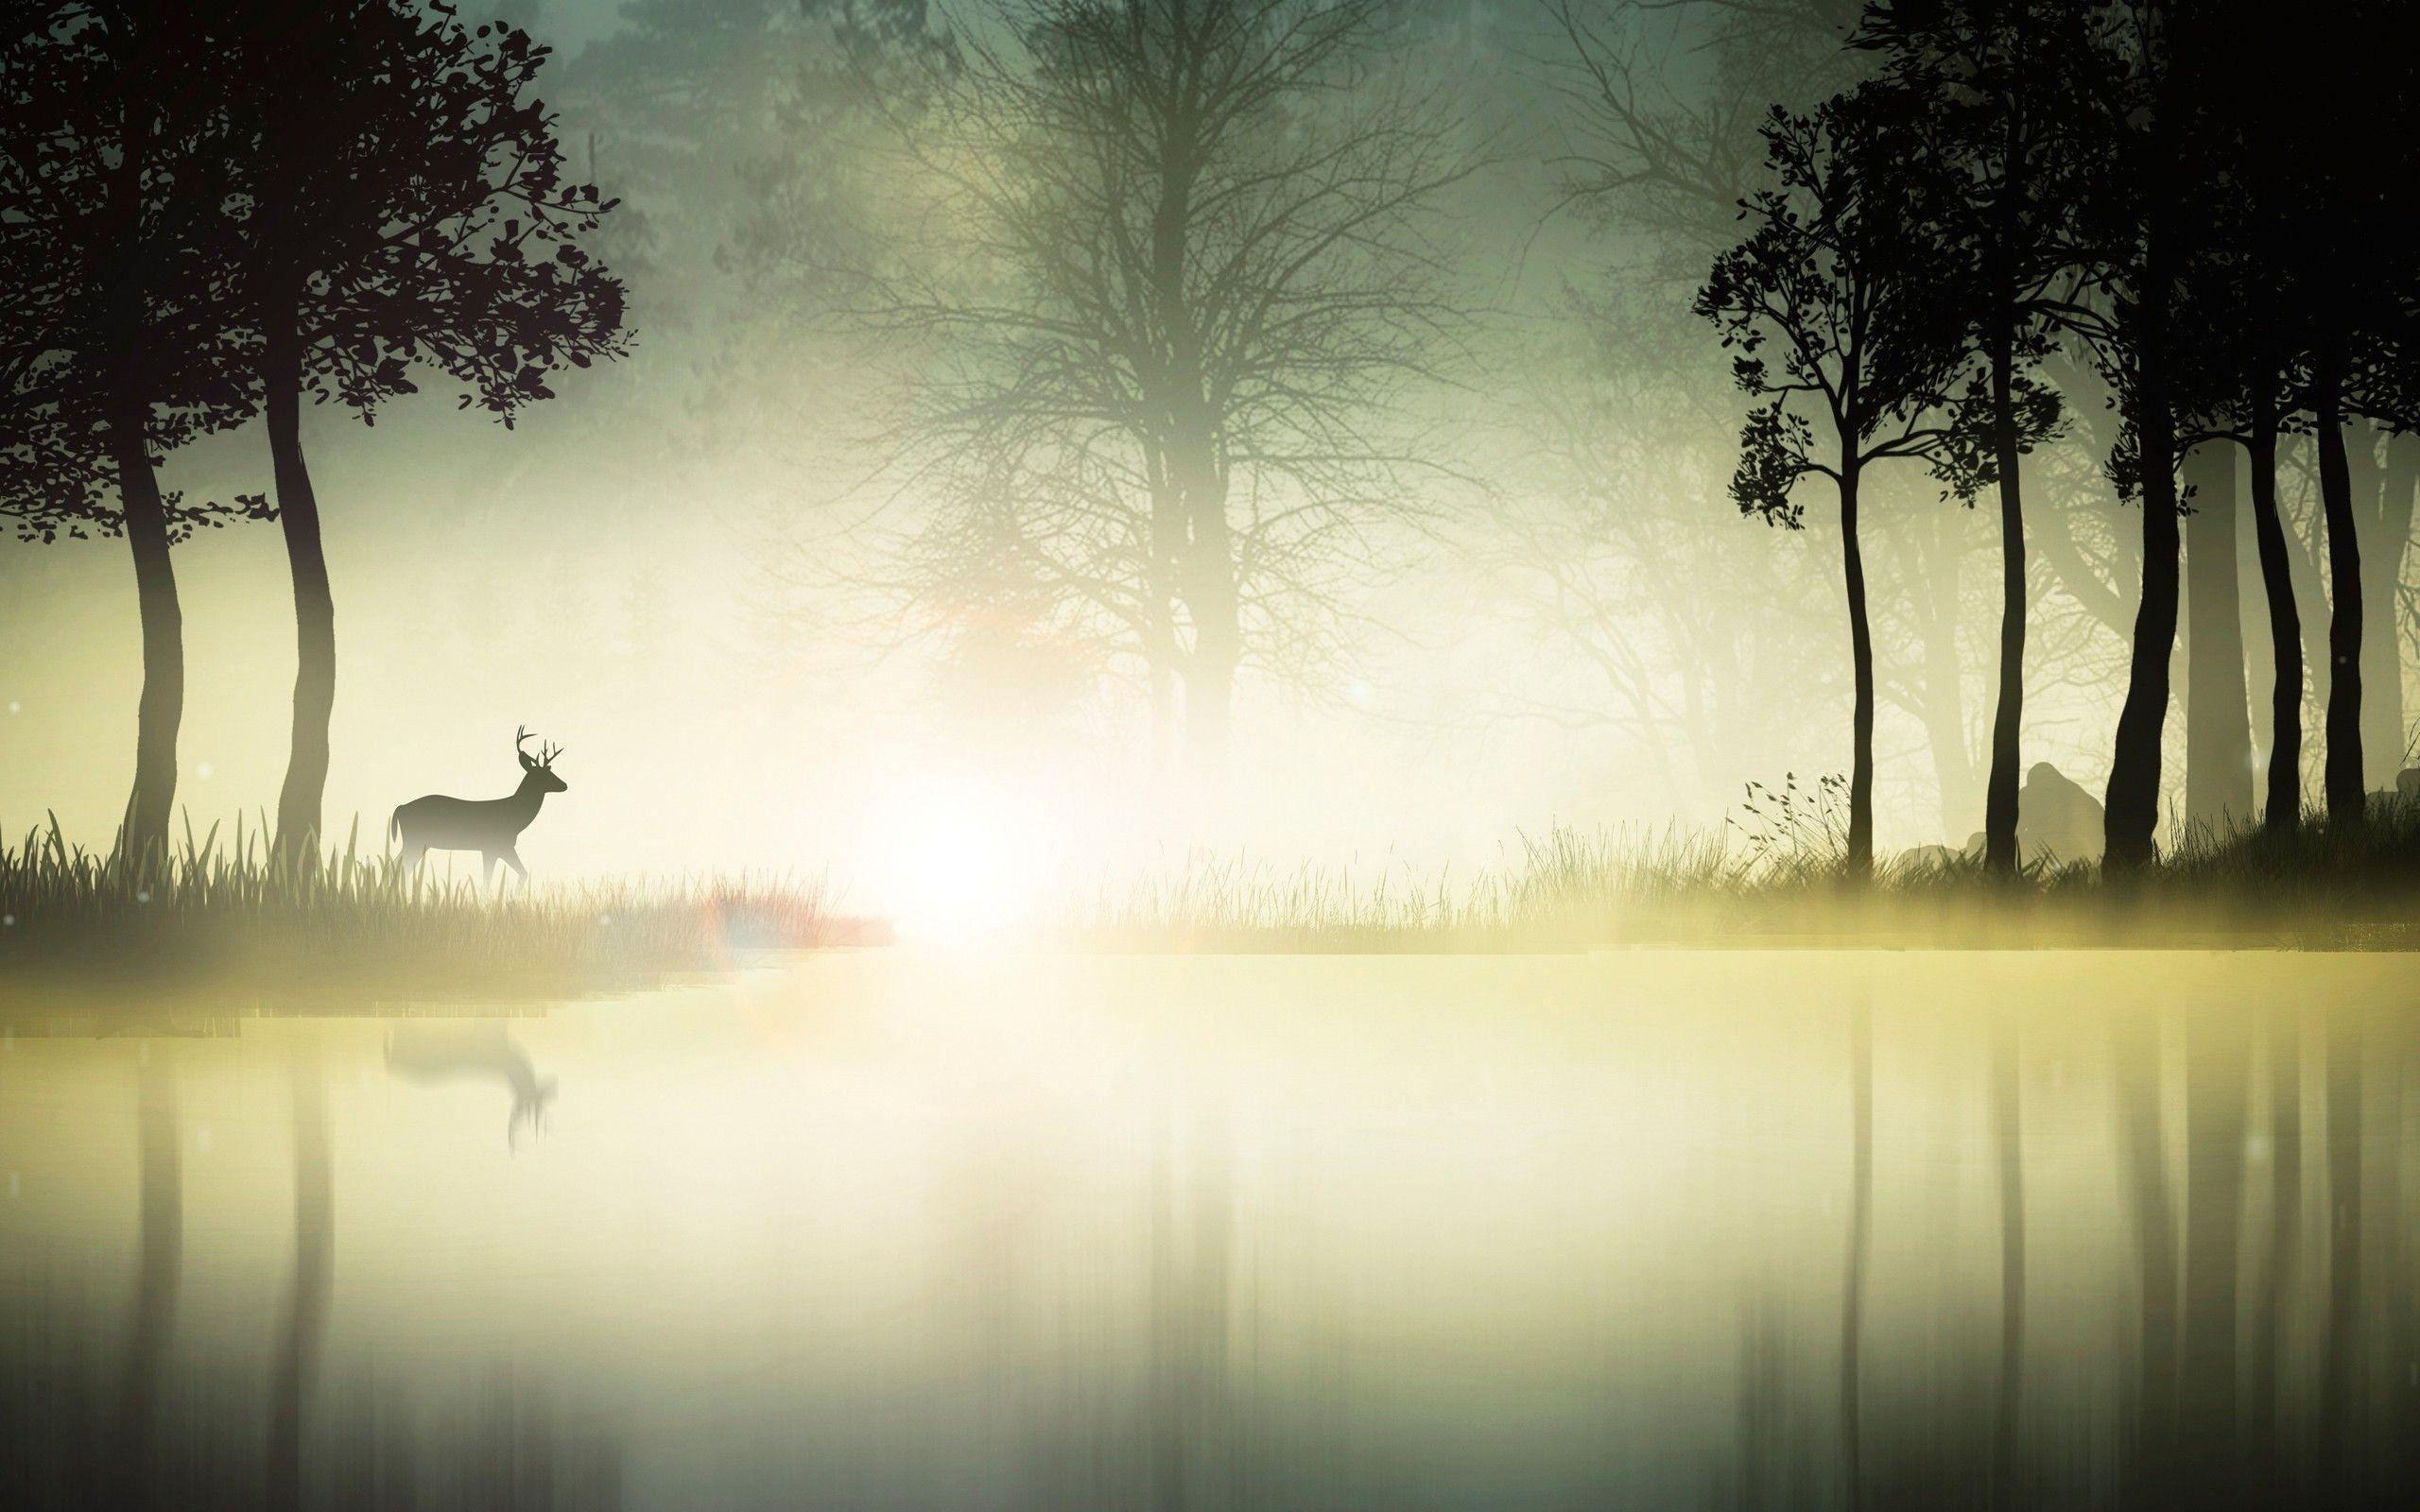 nature, Environment, Landscape, River, Deer, Animals Wallpapers HD